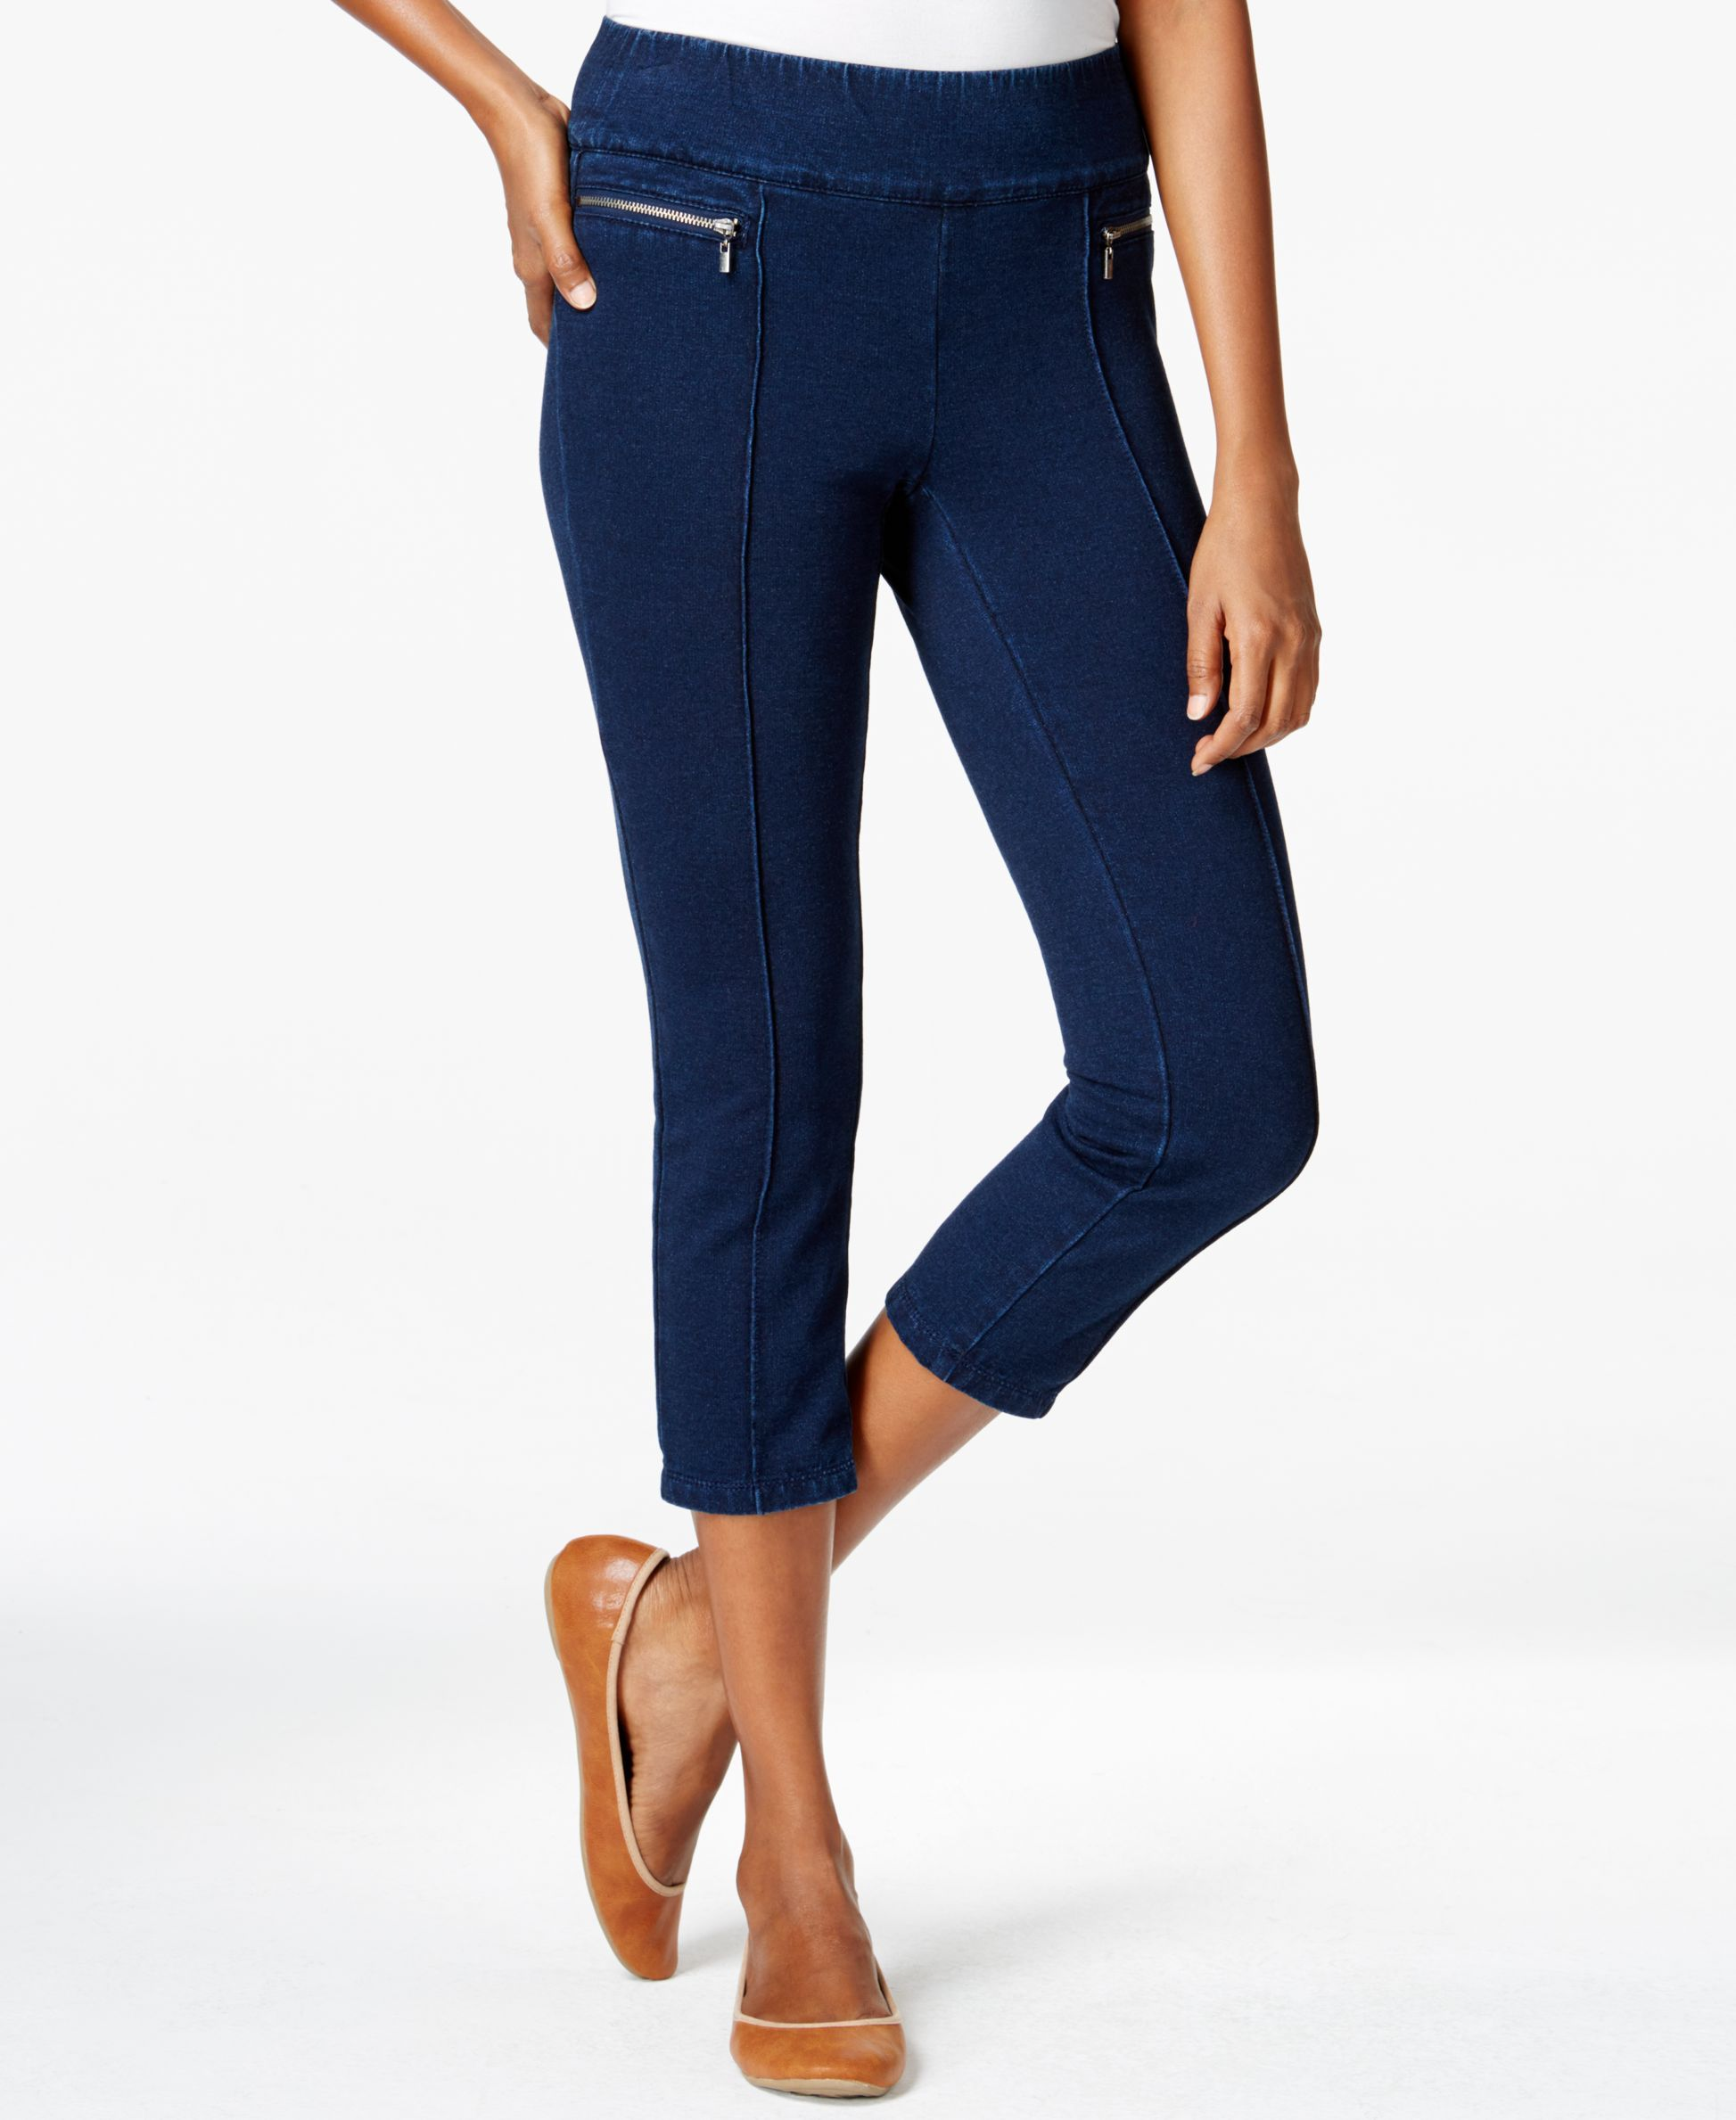 Style & Co. Petite Capri Jeggings, Indigo Wash, Only at Macy's ...